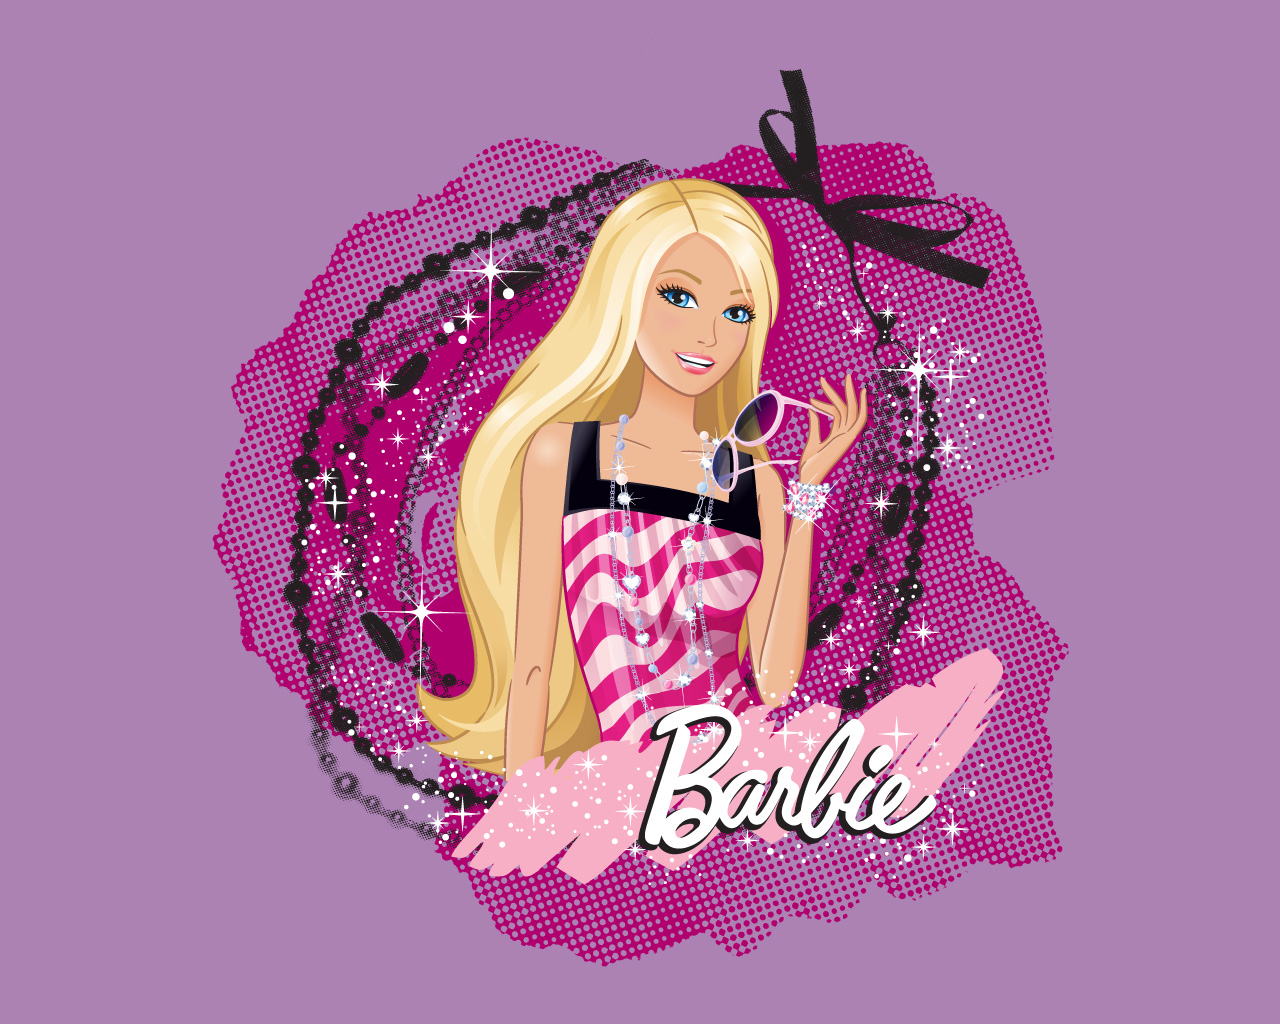 Barbie images Barbie HD wallpaper and background photos 31795212 1280x1024